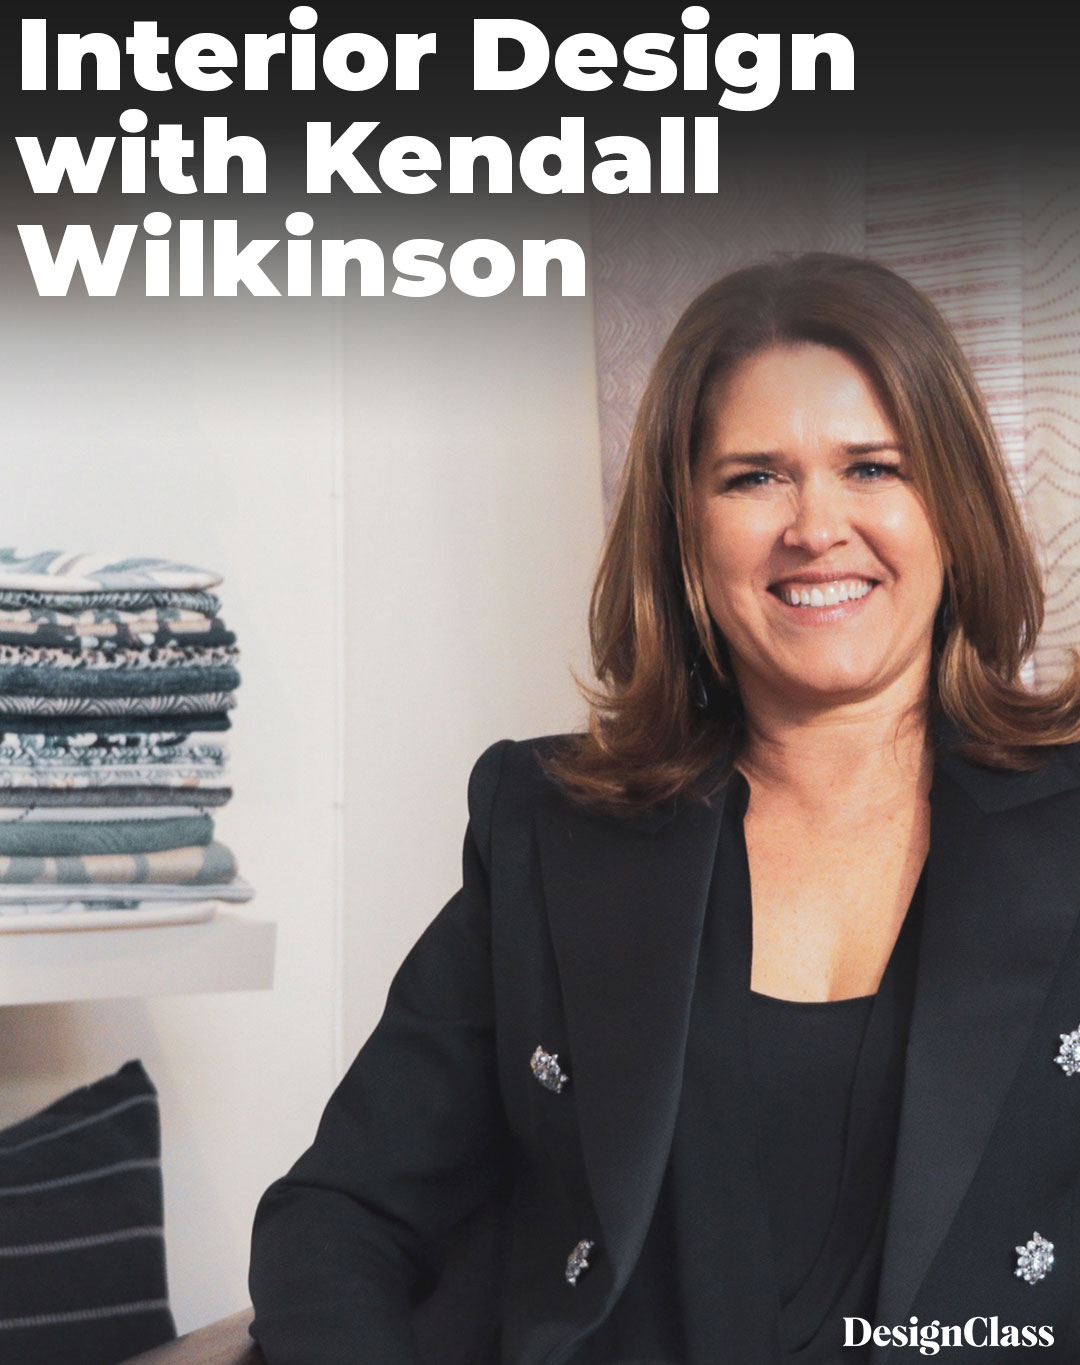 Interior Design with Kendall Wilkinson